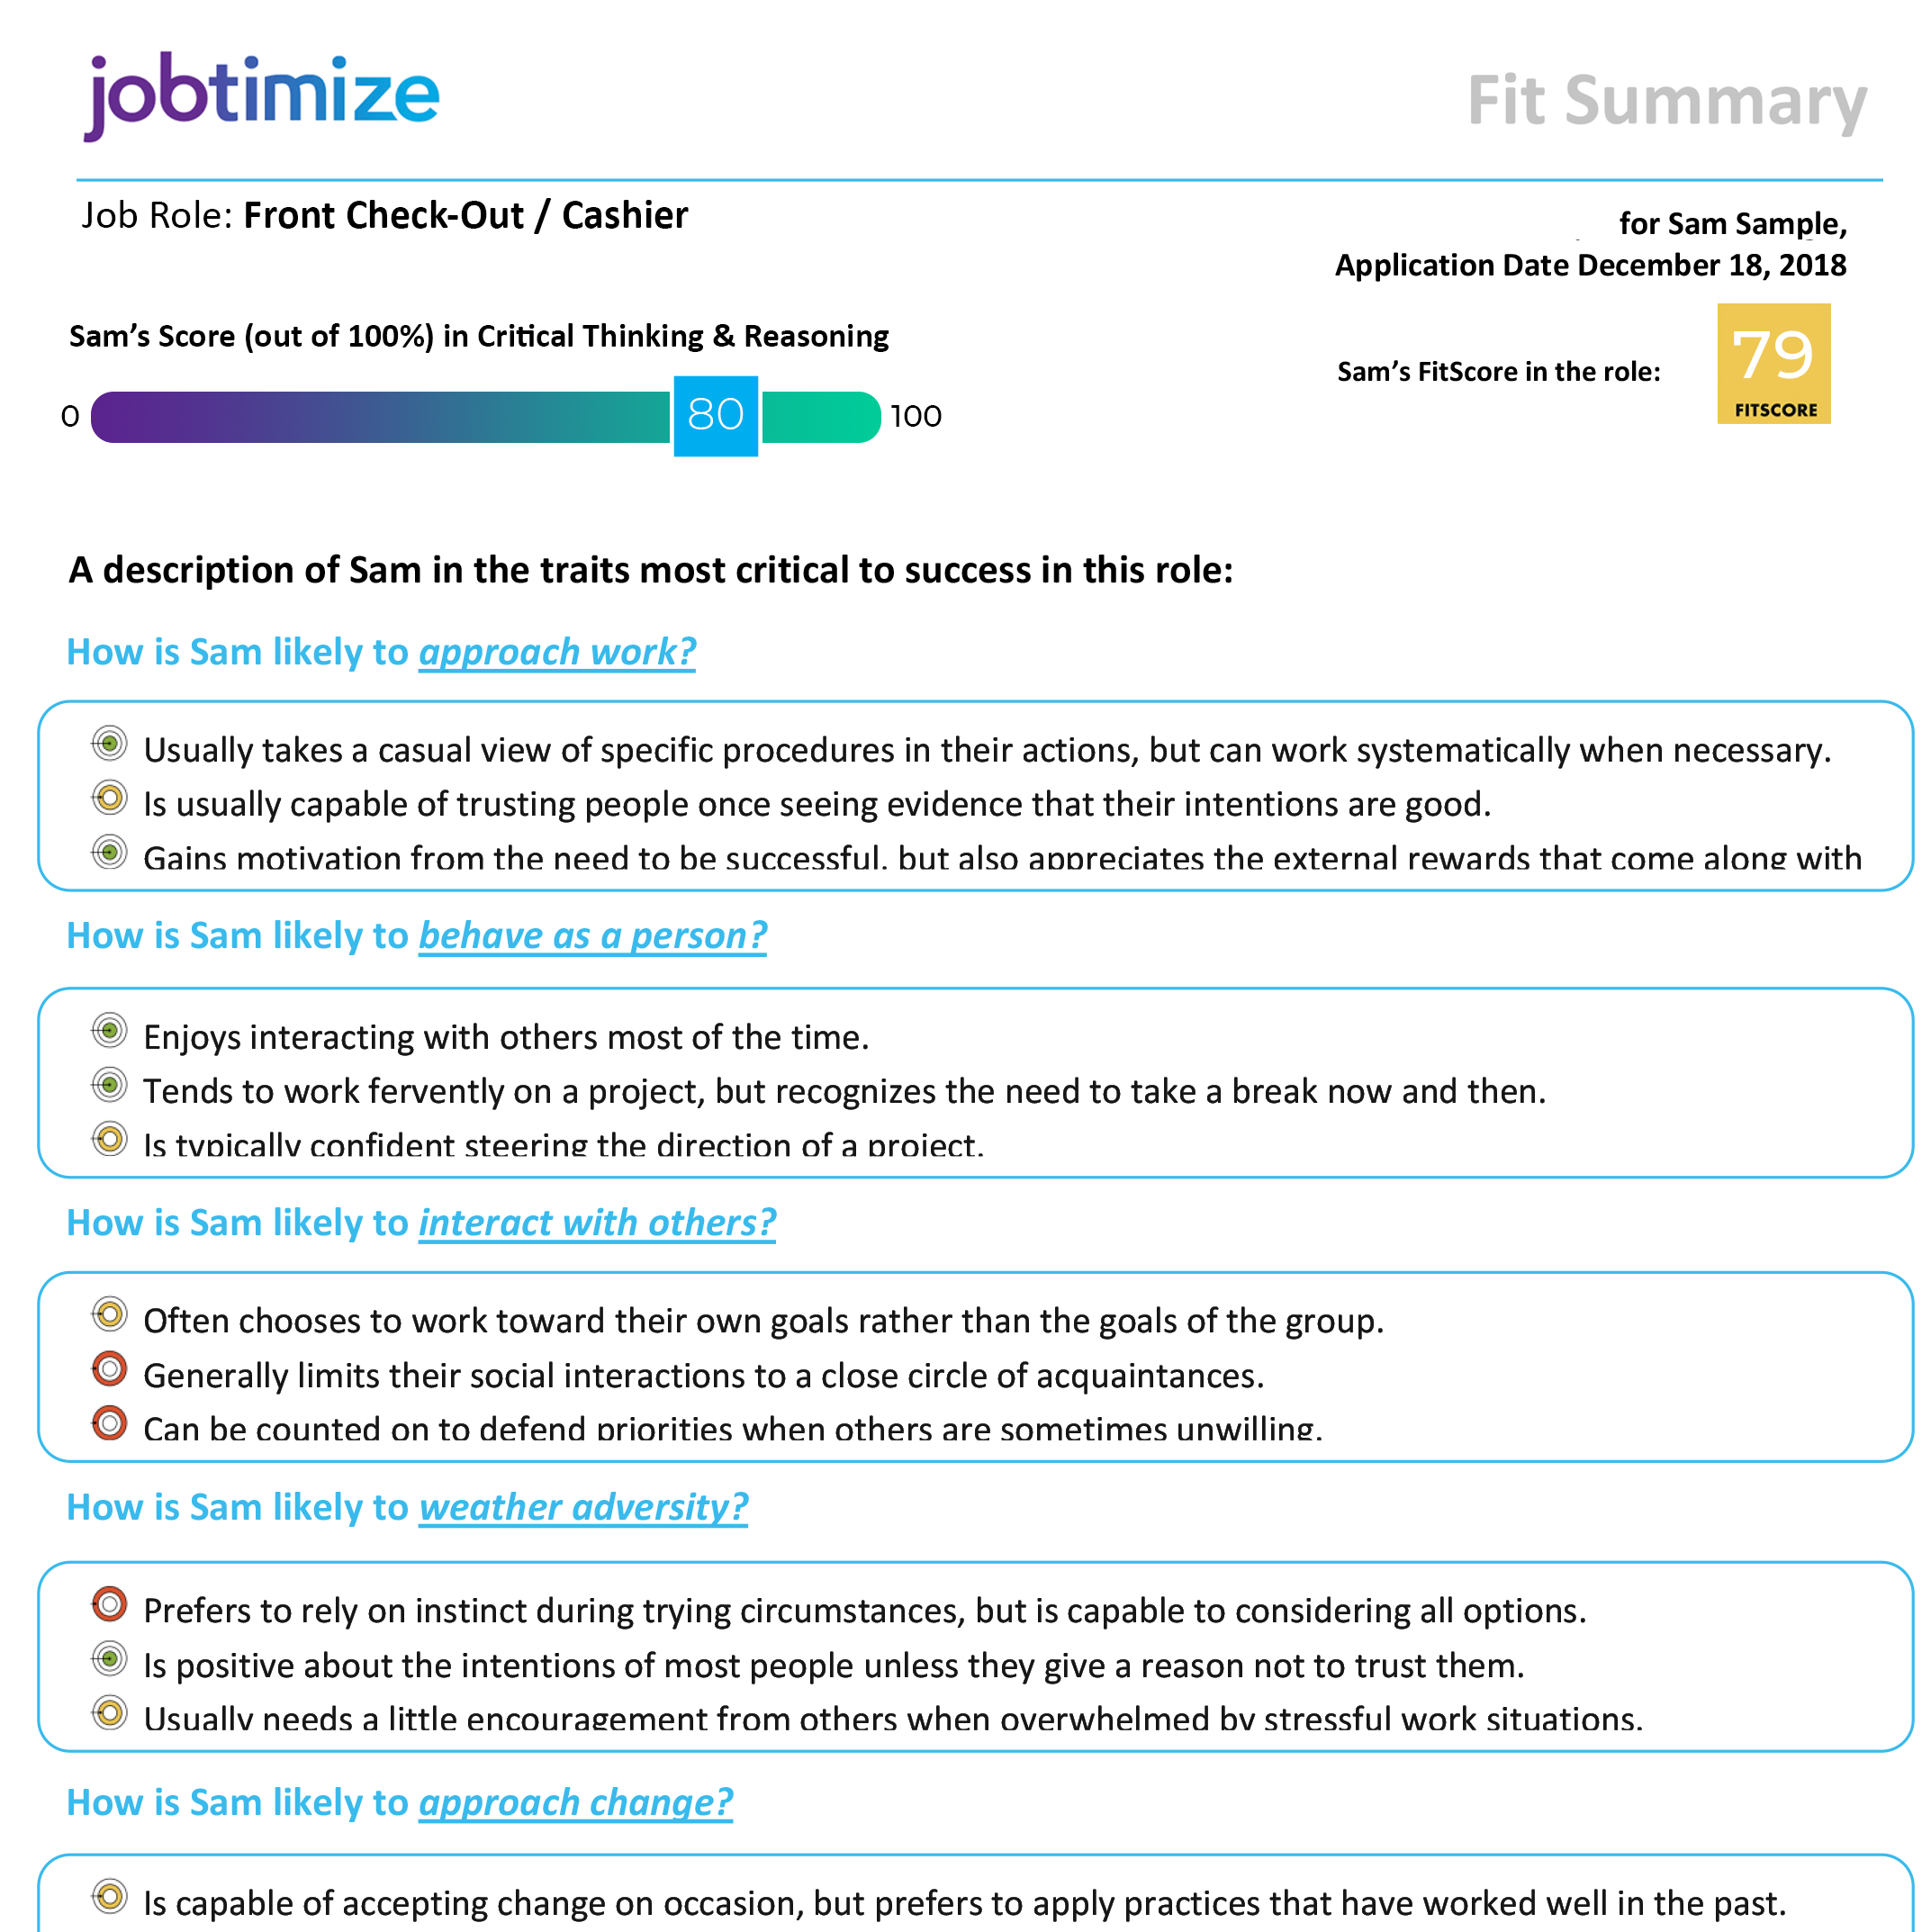 Jobtimize Fit Summary